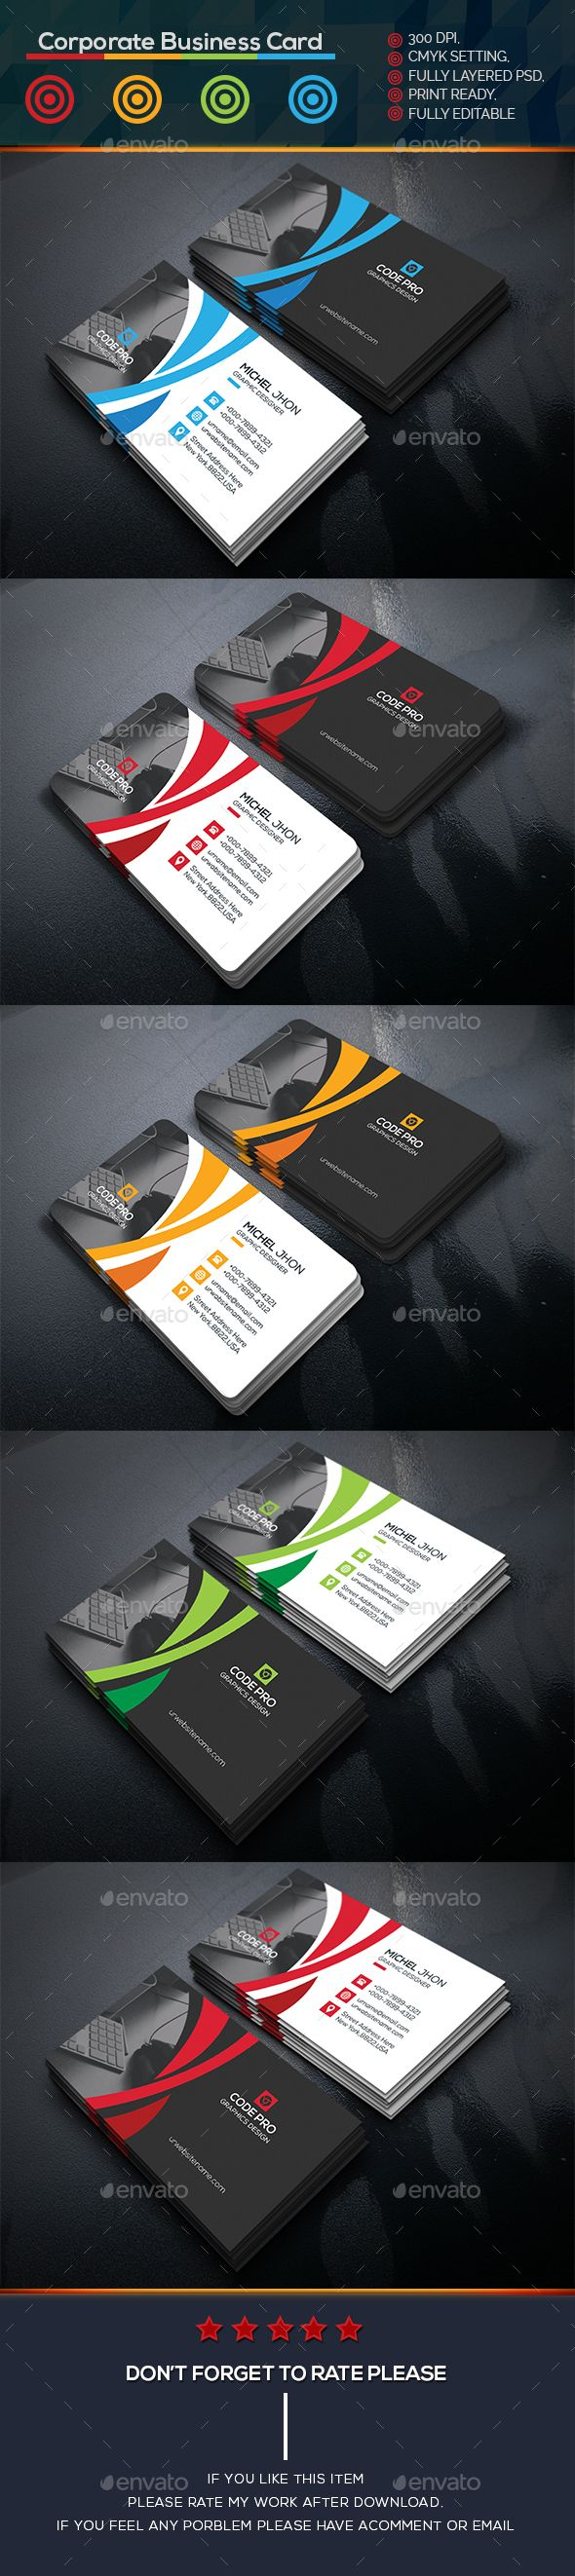 419 Best Card Design Images On Pinterest Visit Cards Business